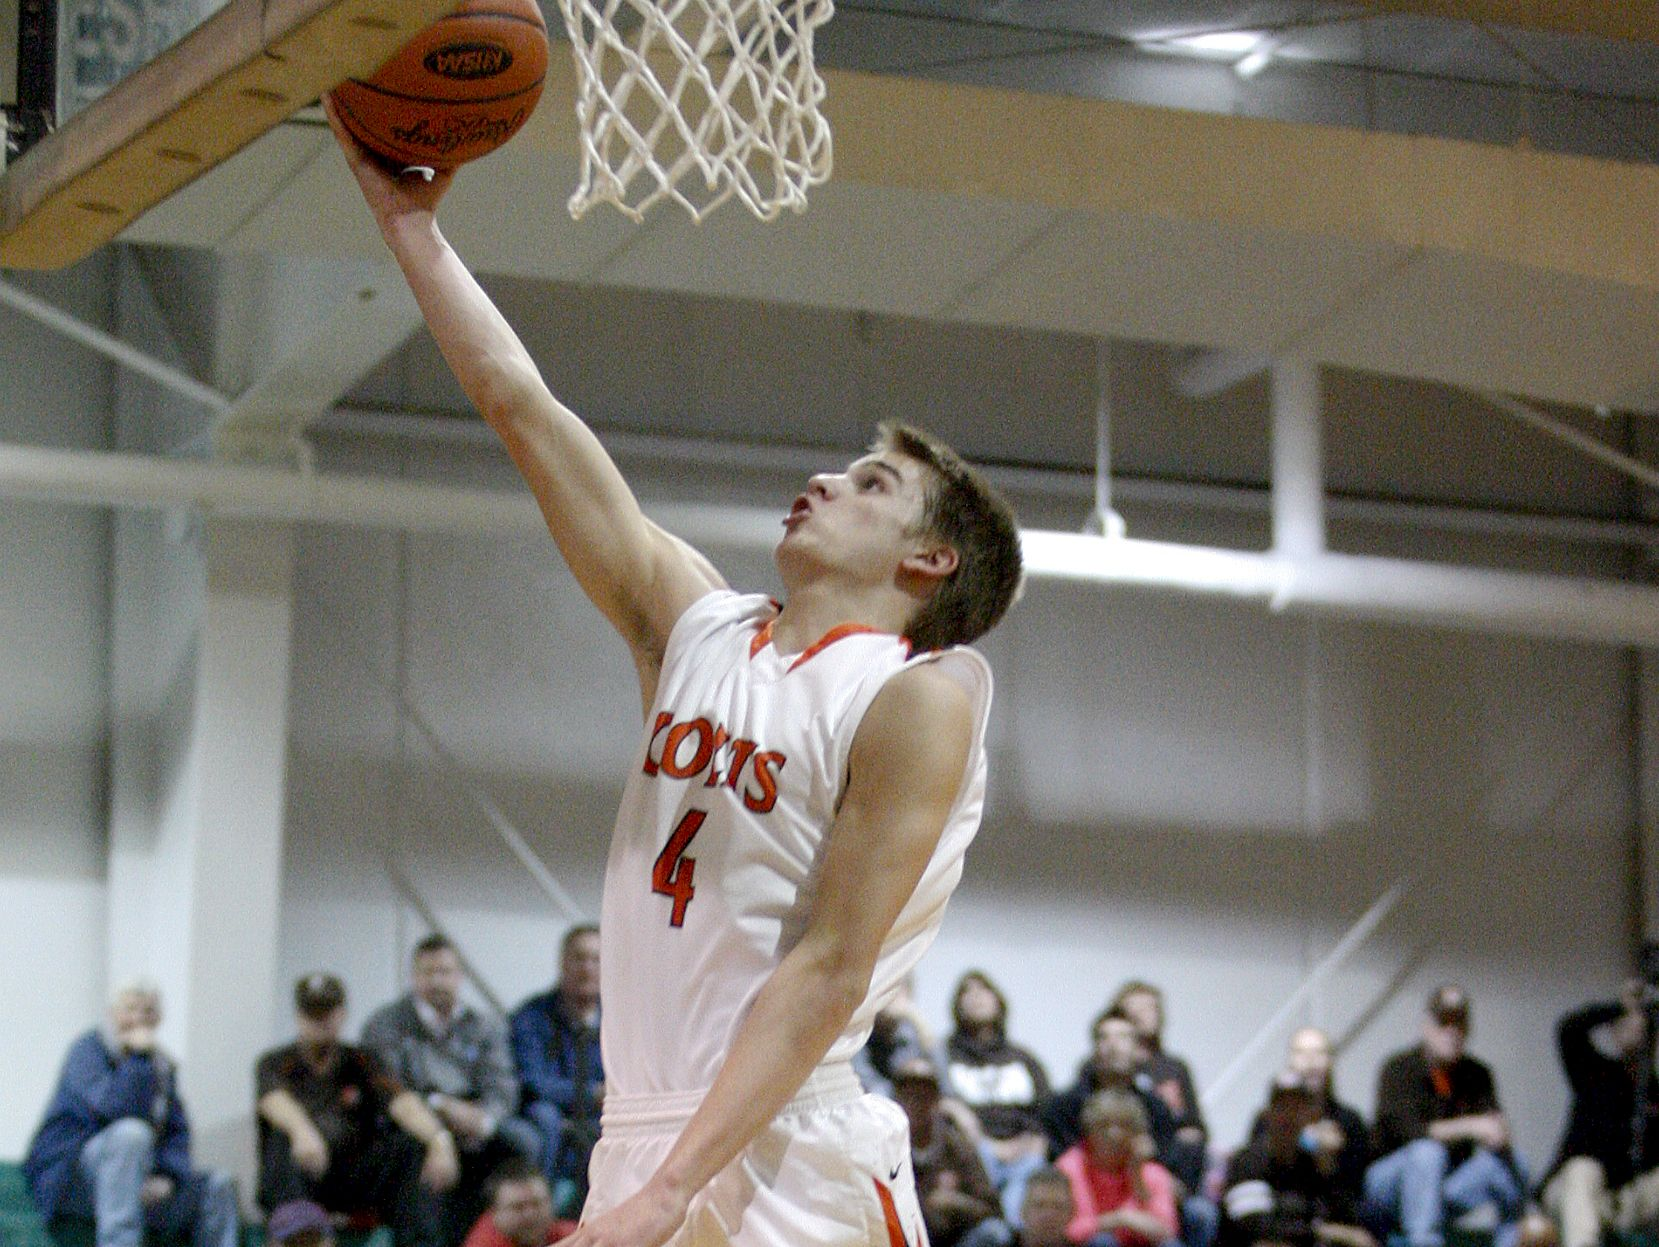 DeSales' Jaxon Burgess, #4, beats the defense for a layup against Western during their game at Western High School. Feb. 24, 2015